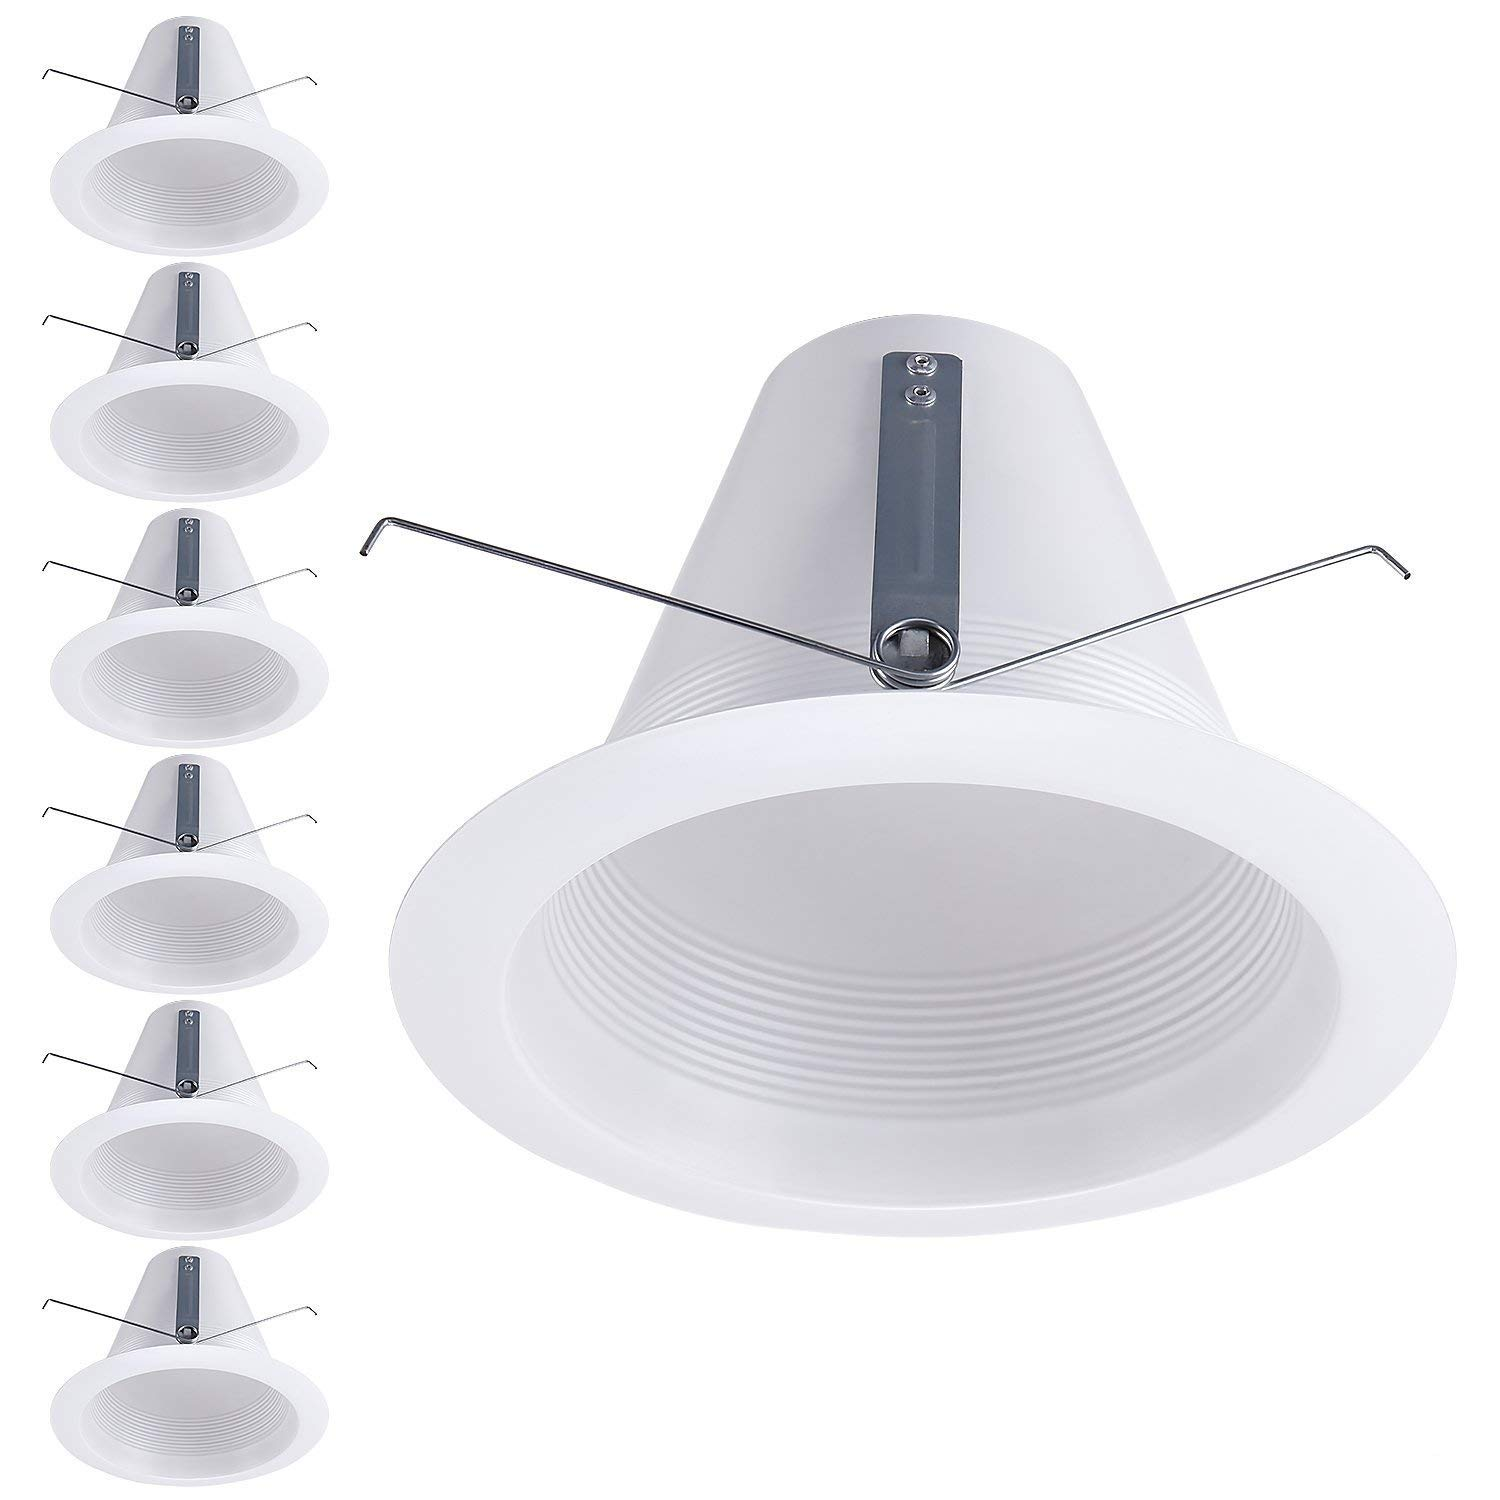 TORCHSTAR 6 Pack 6 Inches Recessed Can Light Trim, White Air Tight Baffle Trim, Anti-Glare Self-Flanged Downlight Trim, for PAR30, BR30, PAR38, BR40, A19 Bulbs & 6'' Housing Can